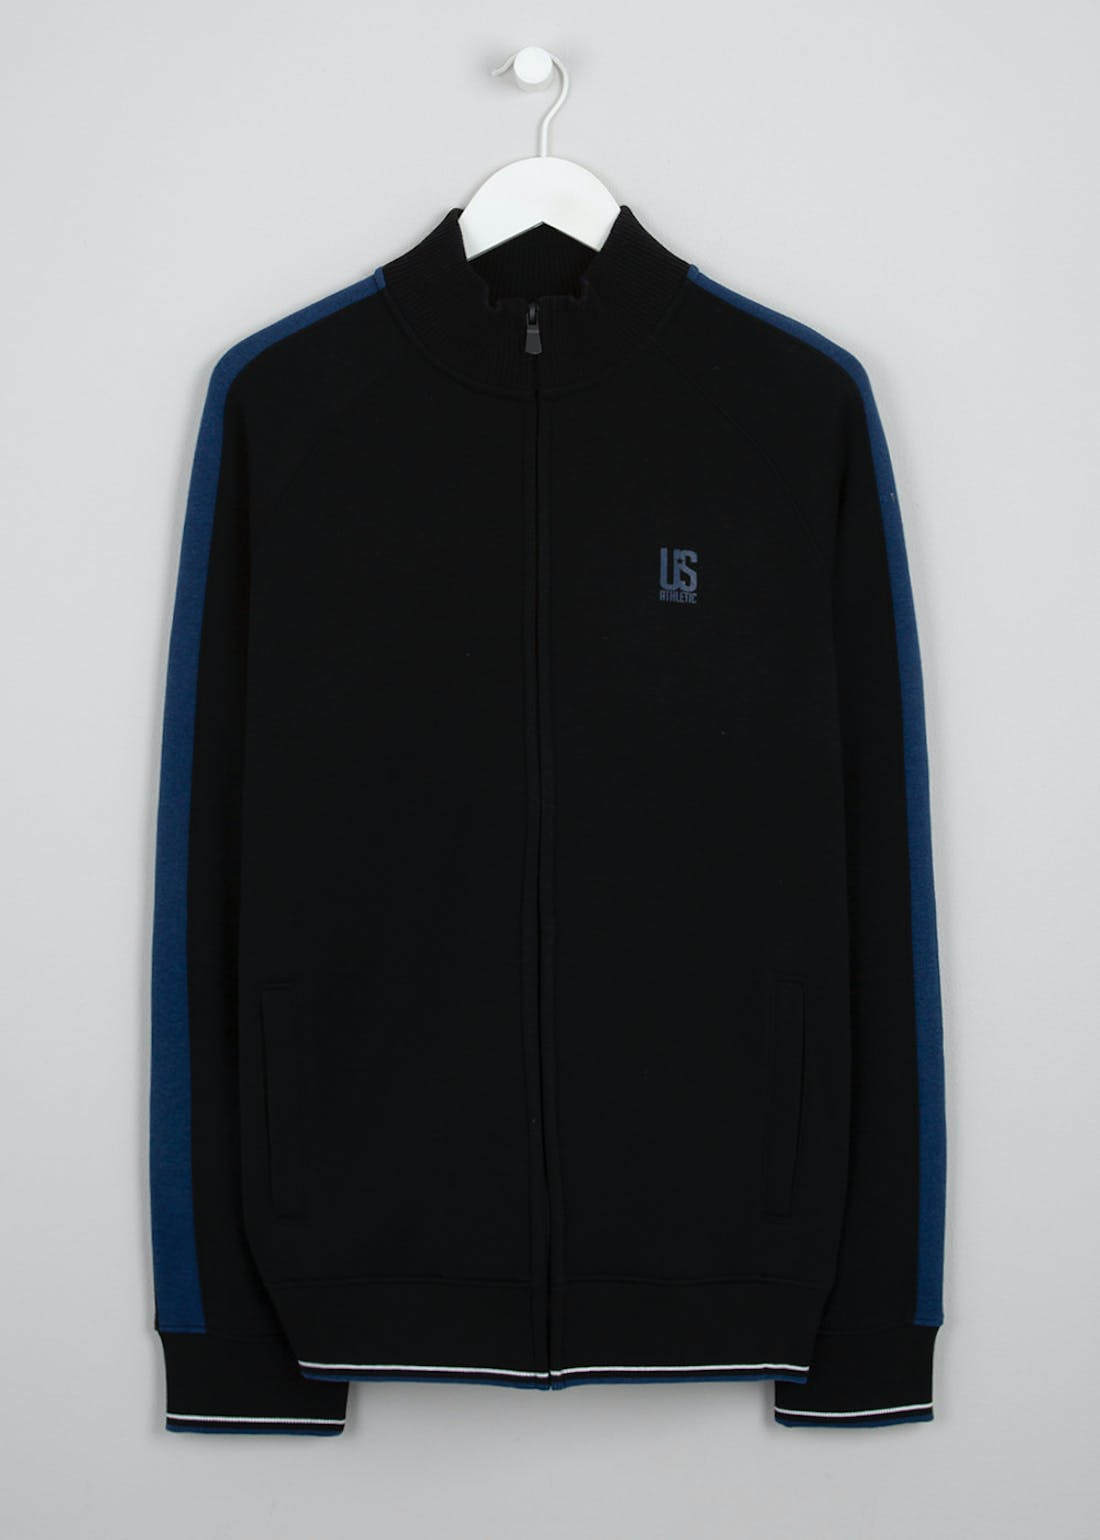 US Athletic Zip Through Track Jacket